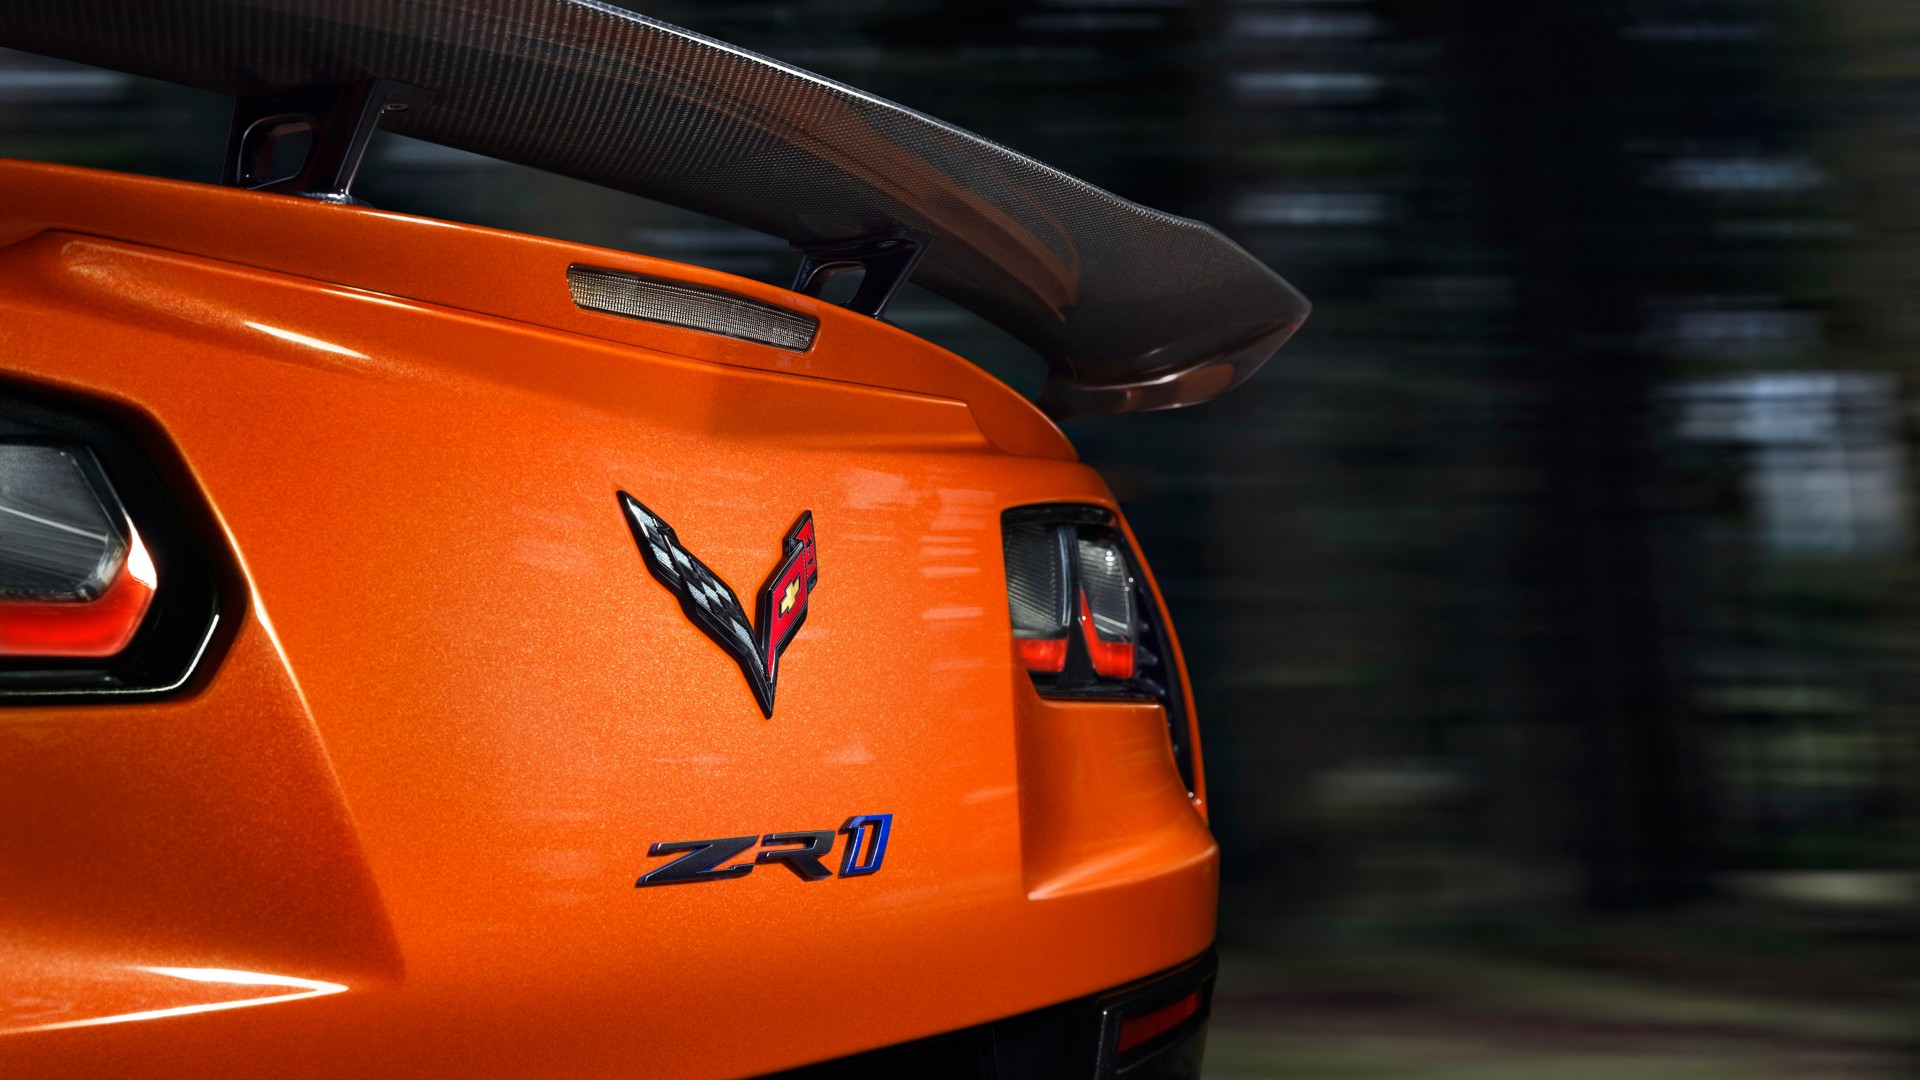 Chevrolet Corvette ZR1 4K 2019 Wallpaper | HD Car ...